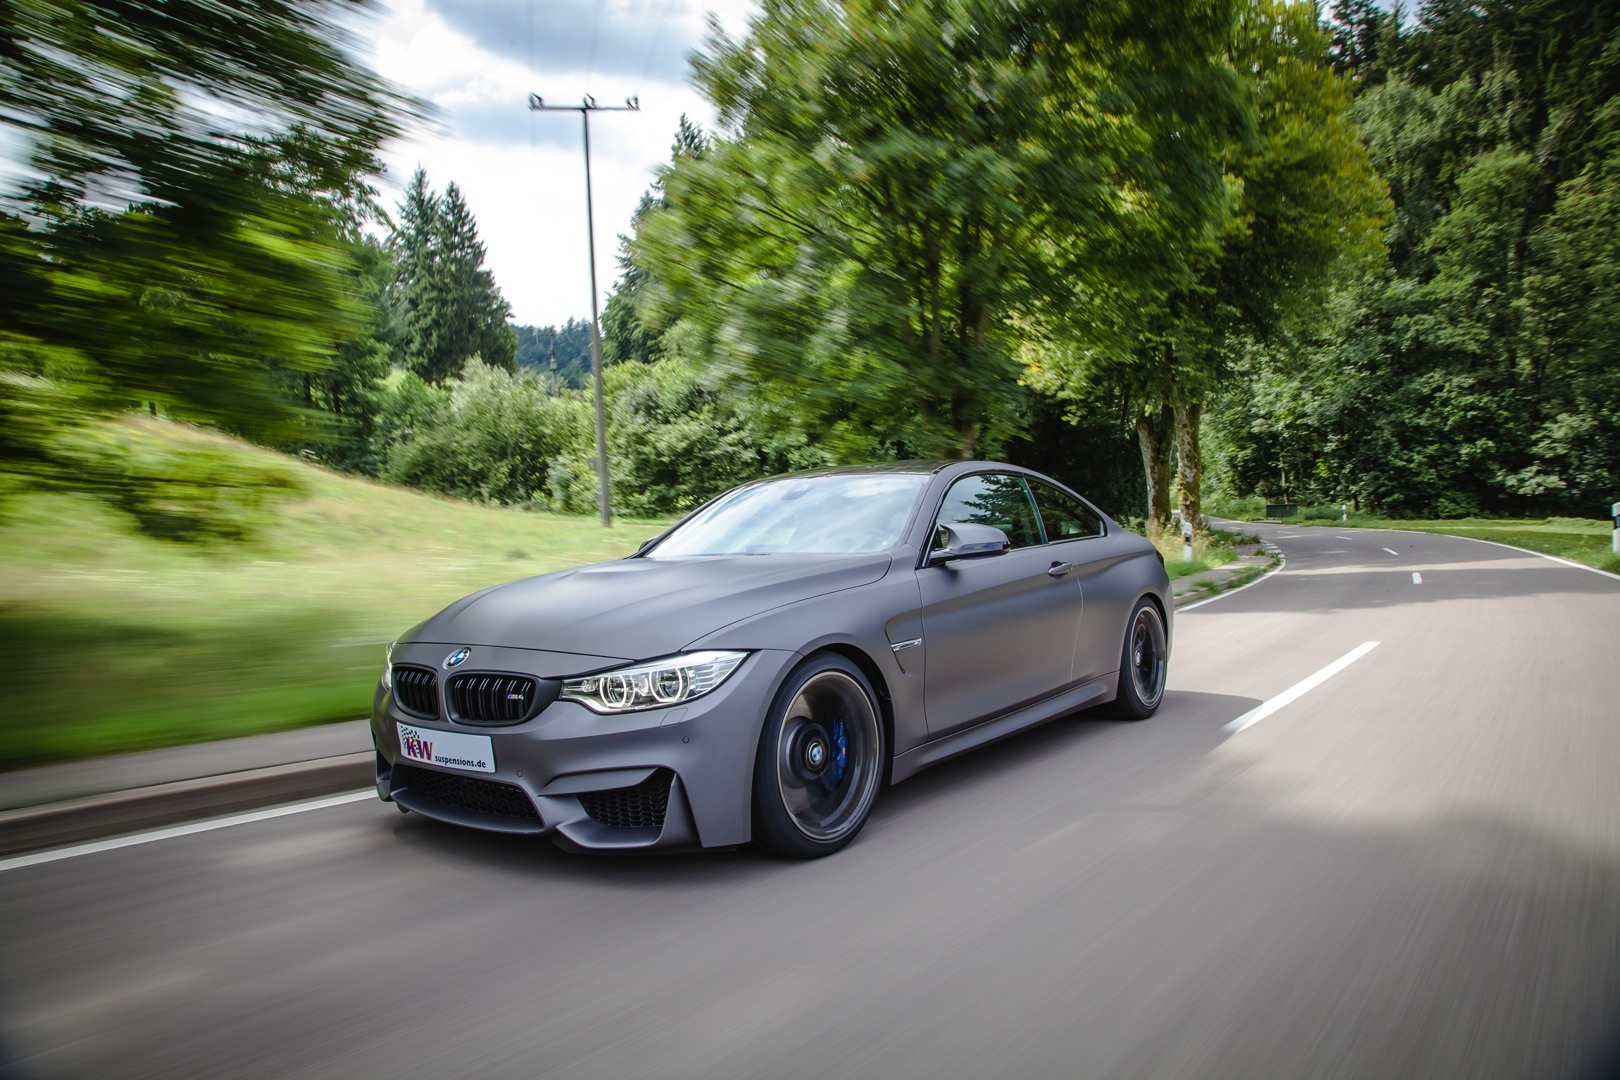 Bmw 5 Series Wallpaper Iphone Kw Kits Now Available For 2015 Bmw M3 And M4 Autoevolution